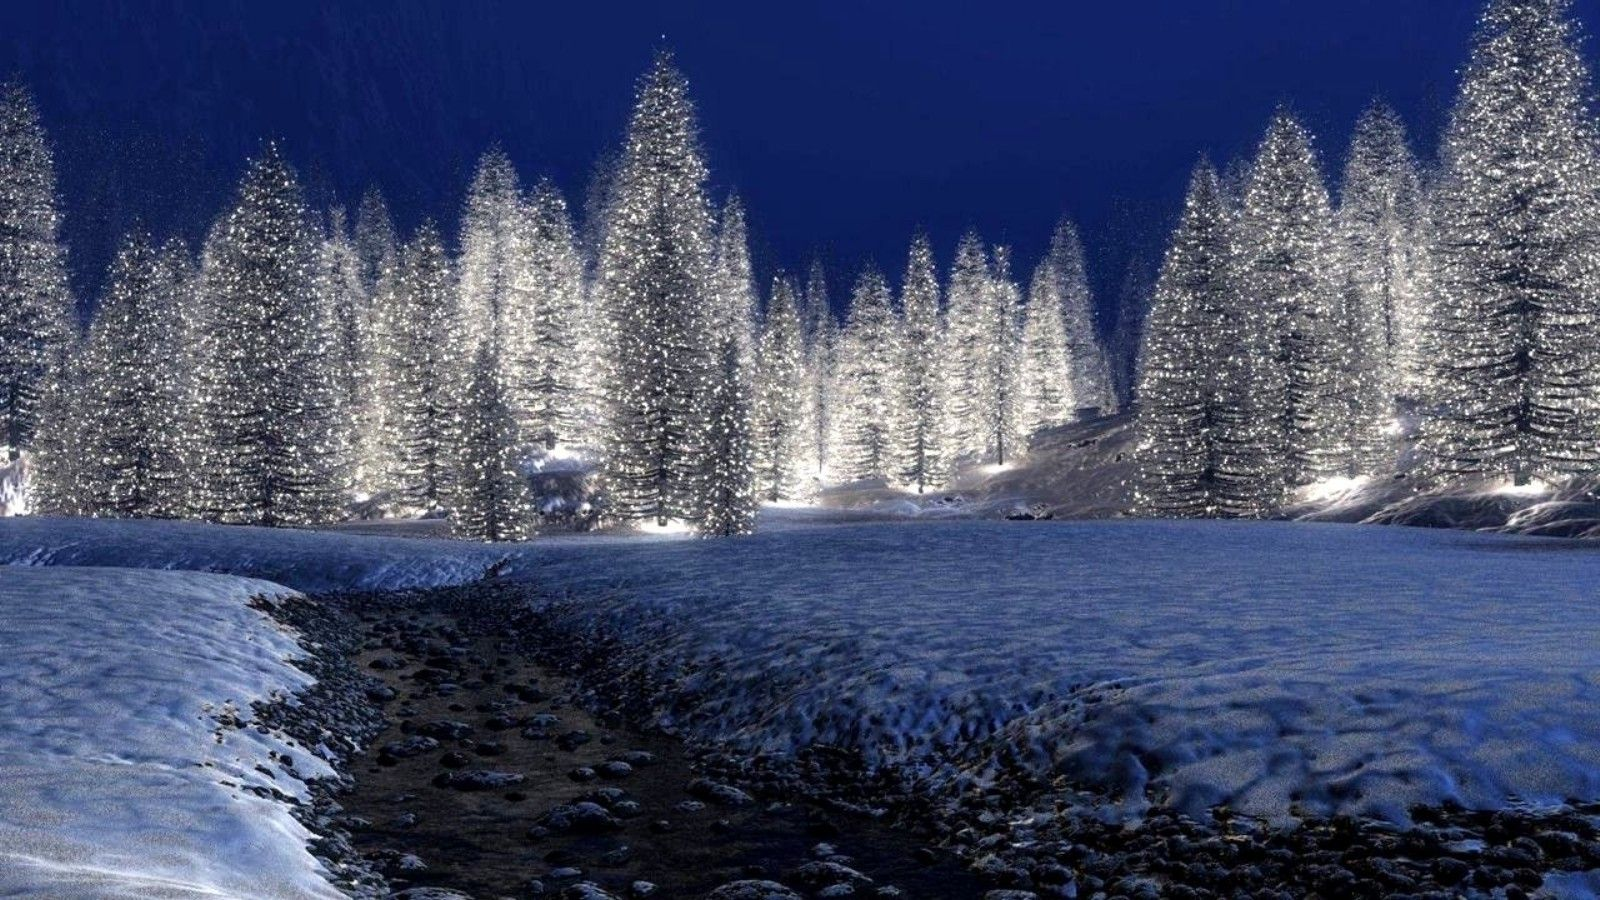 Winter Forest Night Wallpaper Free Click Wallpapers